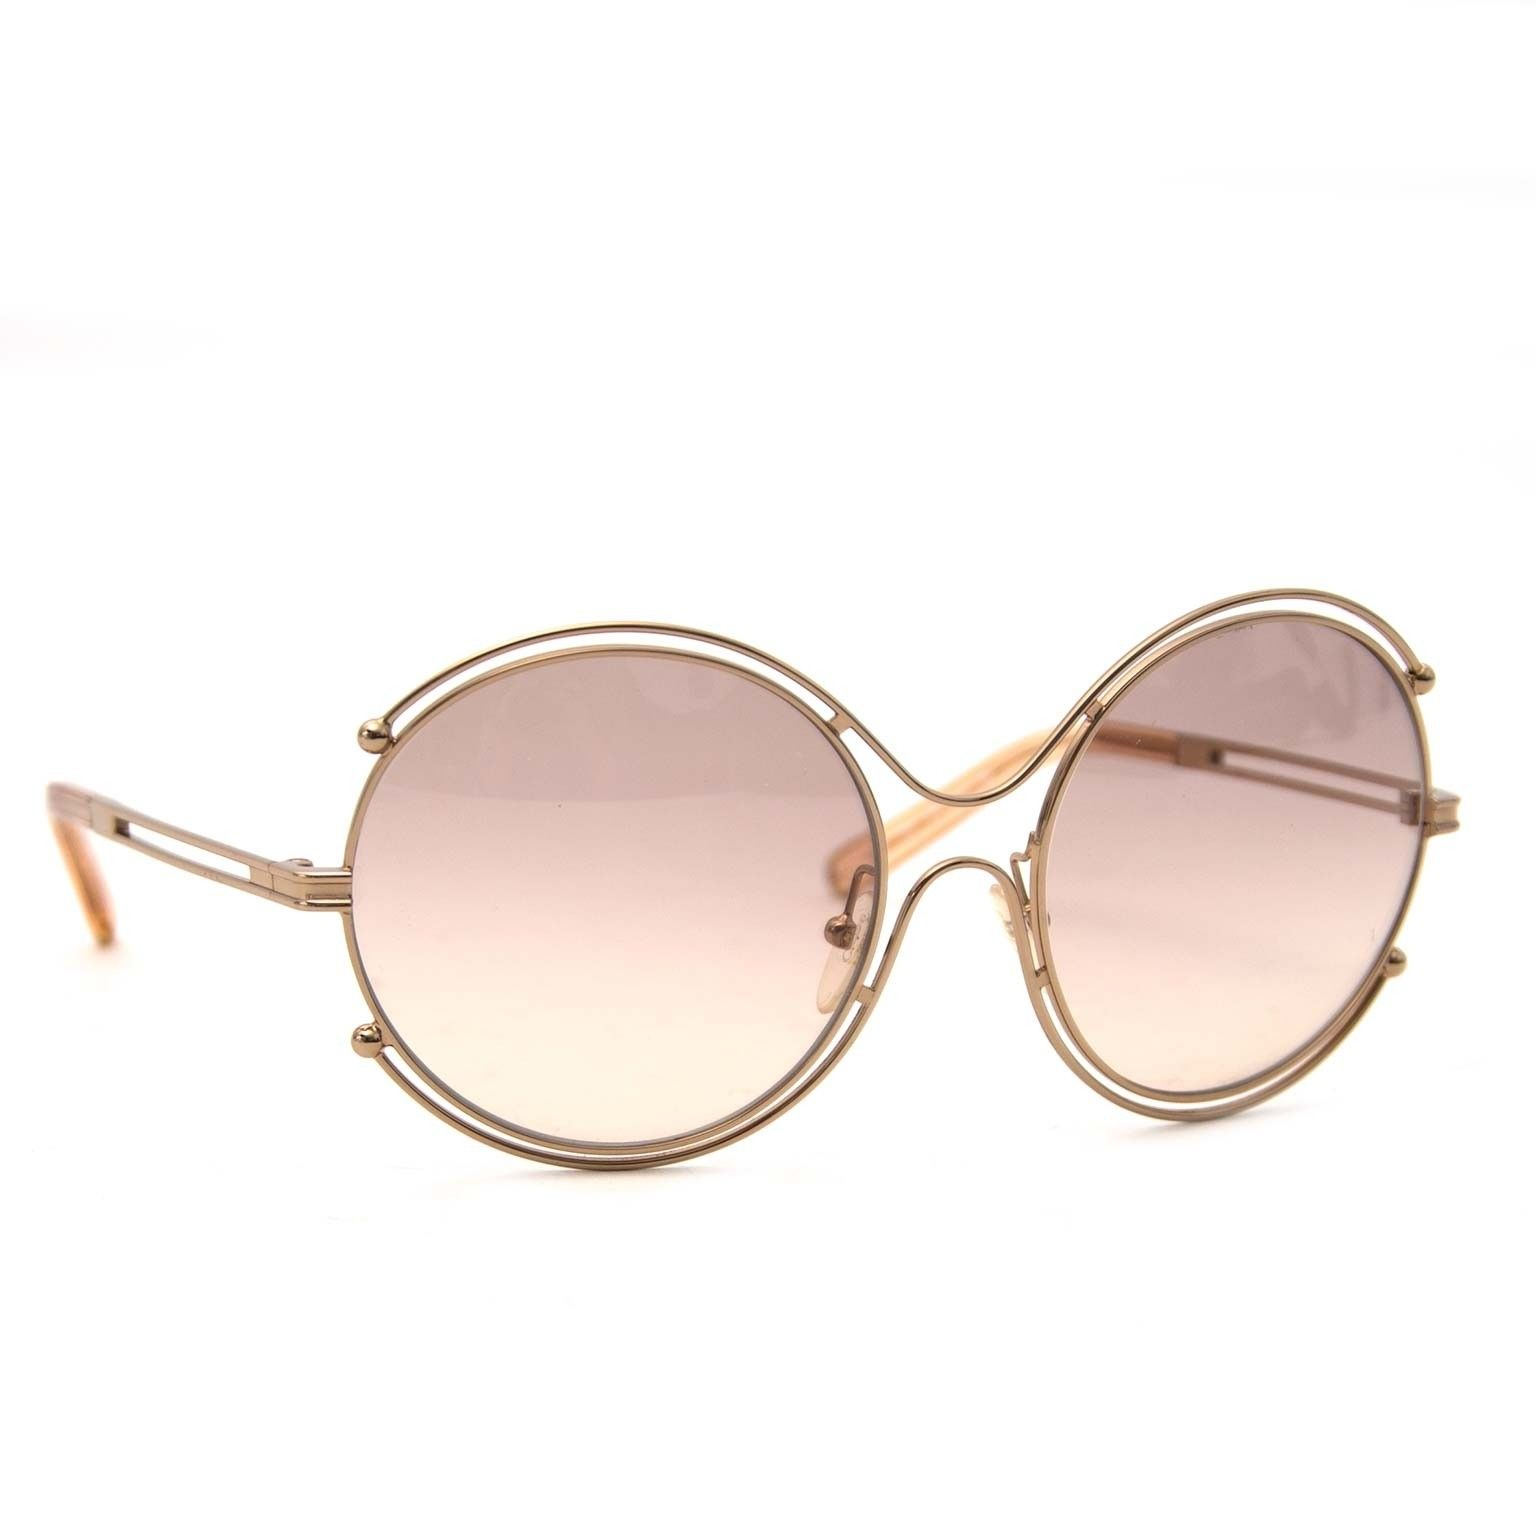 f836aab5a3 Chloé Isidora Rosé Round Sunglasses Buy authentic designer Chloé secondhand  sunglasses at Labellov at the best price. Safe and secure shopping.